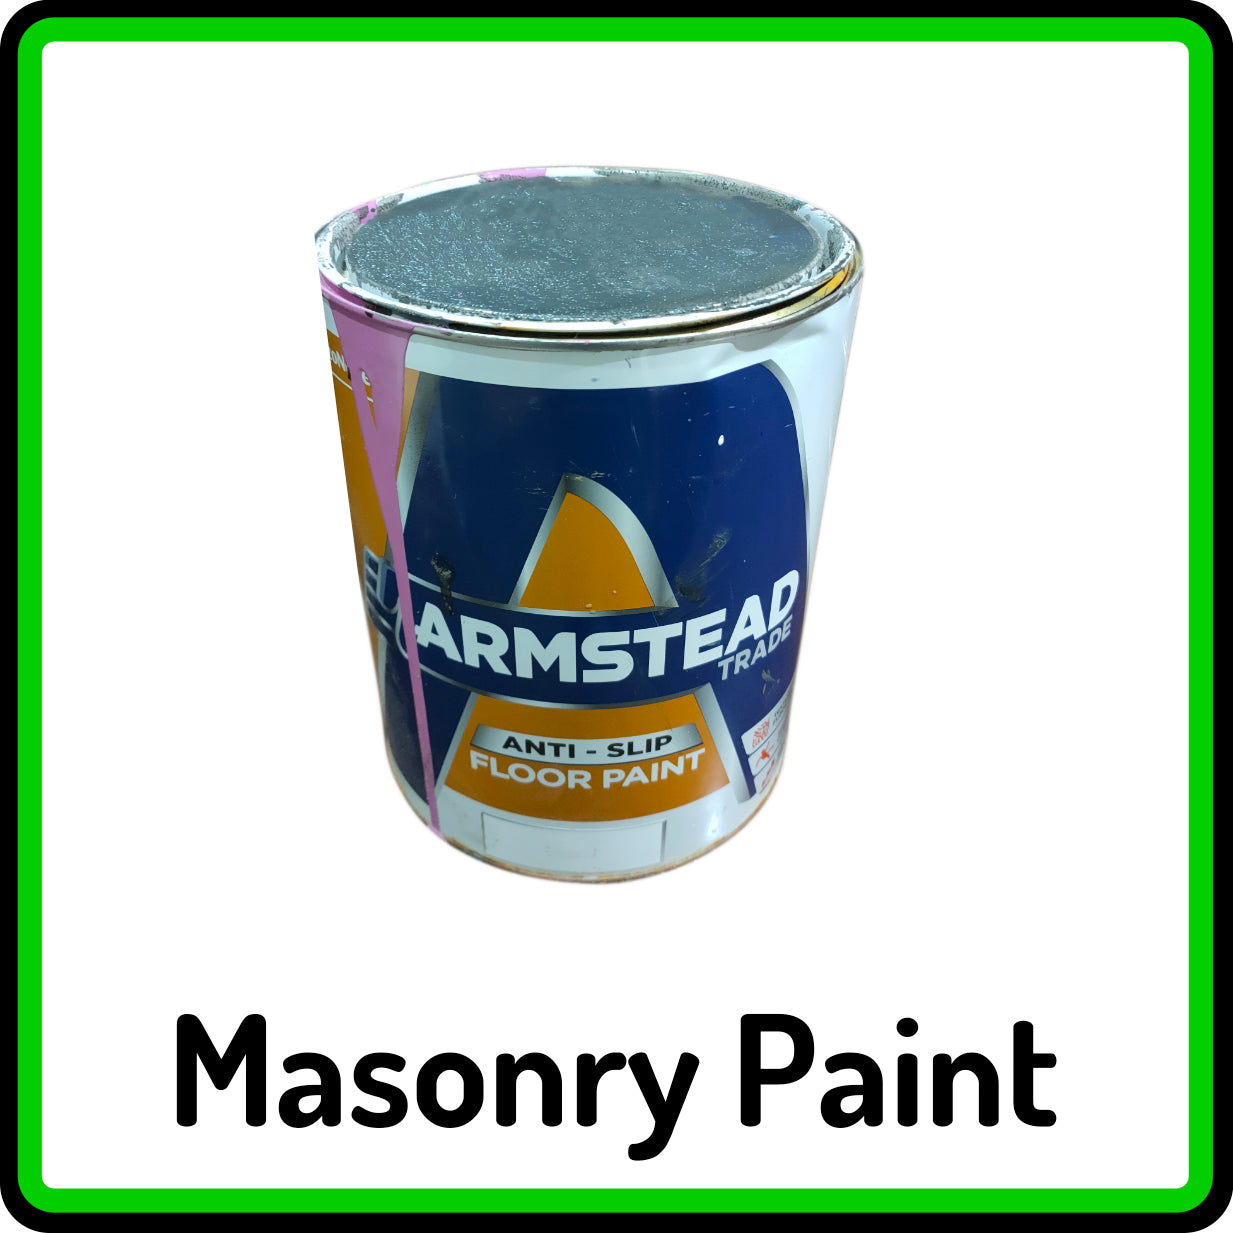 View our selection of Masonry Paints